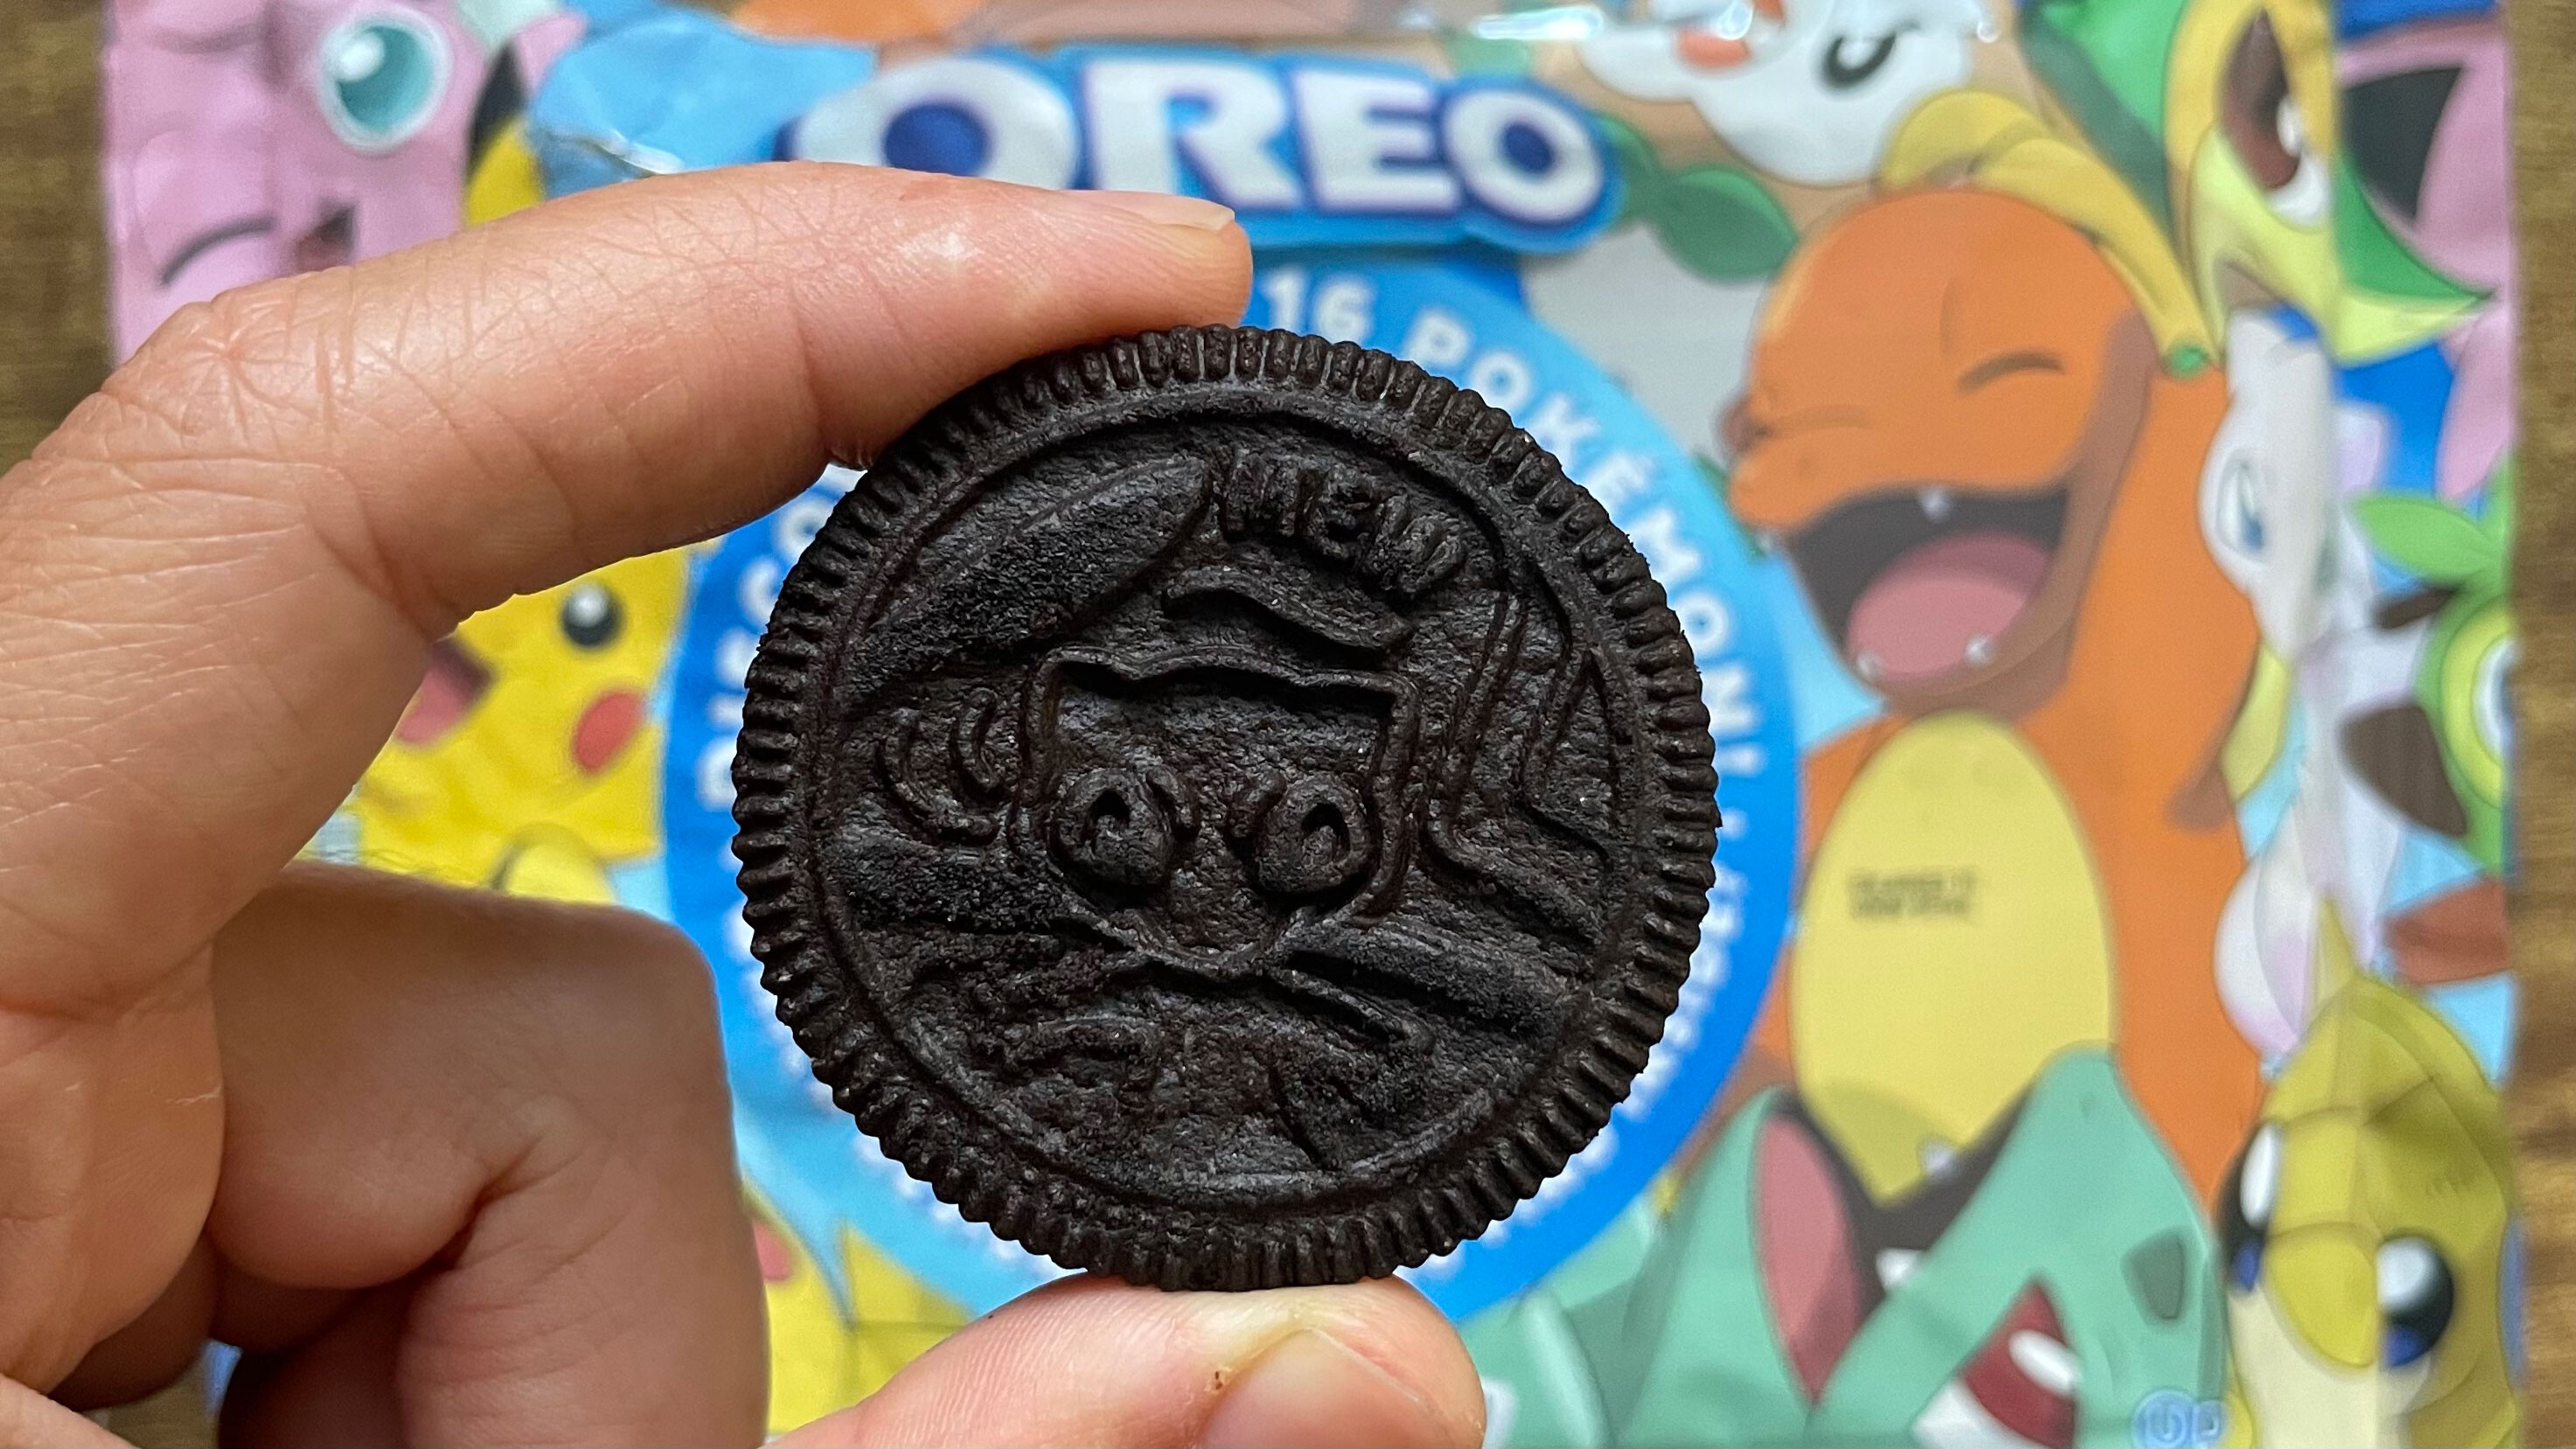 Limited edition Pokémon Oreo cookies are being listed for thousands on eBay